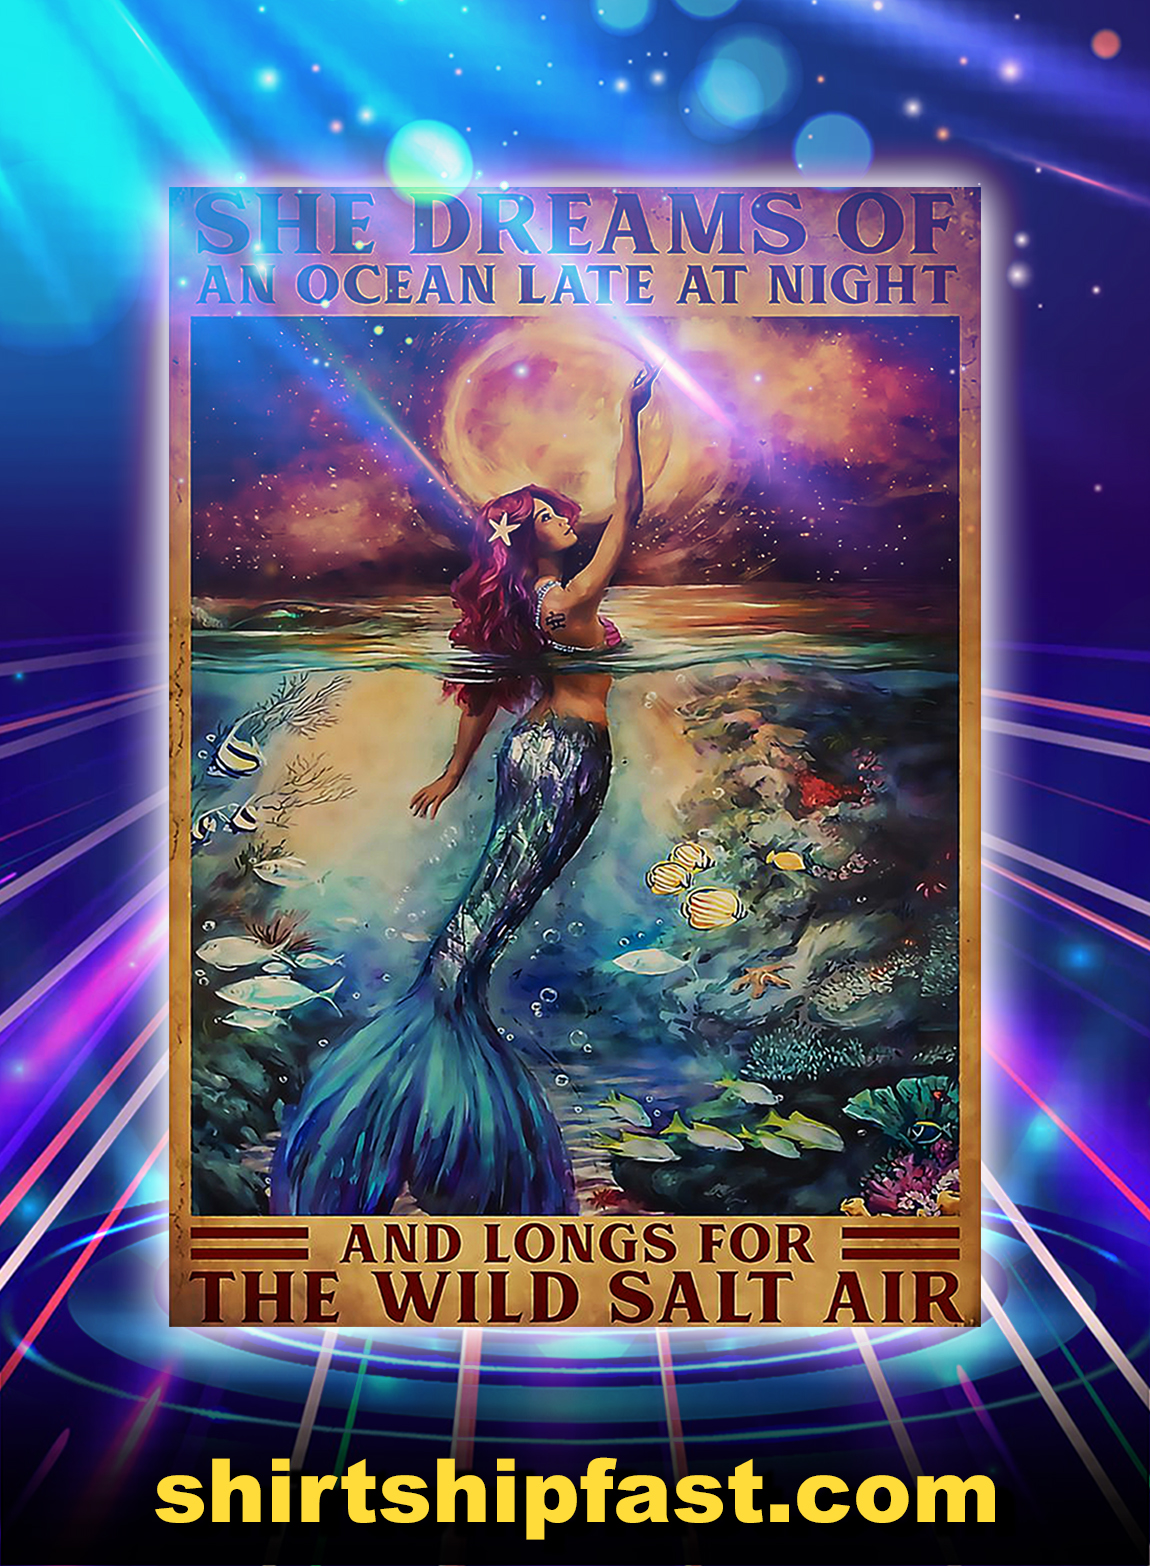 Mermaid she dreams of an ocean late at night and longs for the wild salt air poster - A3